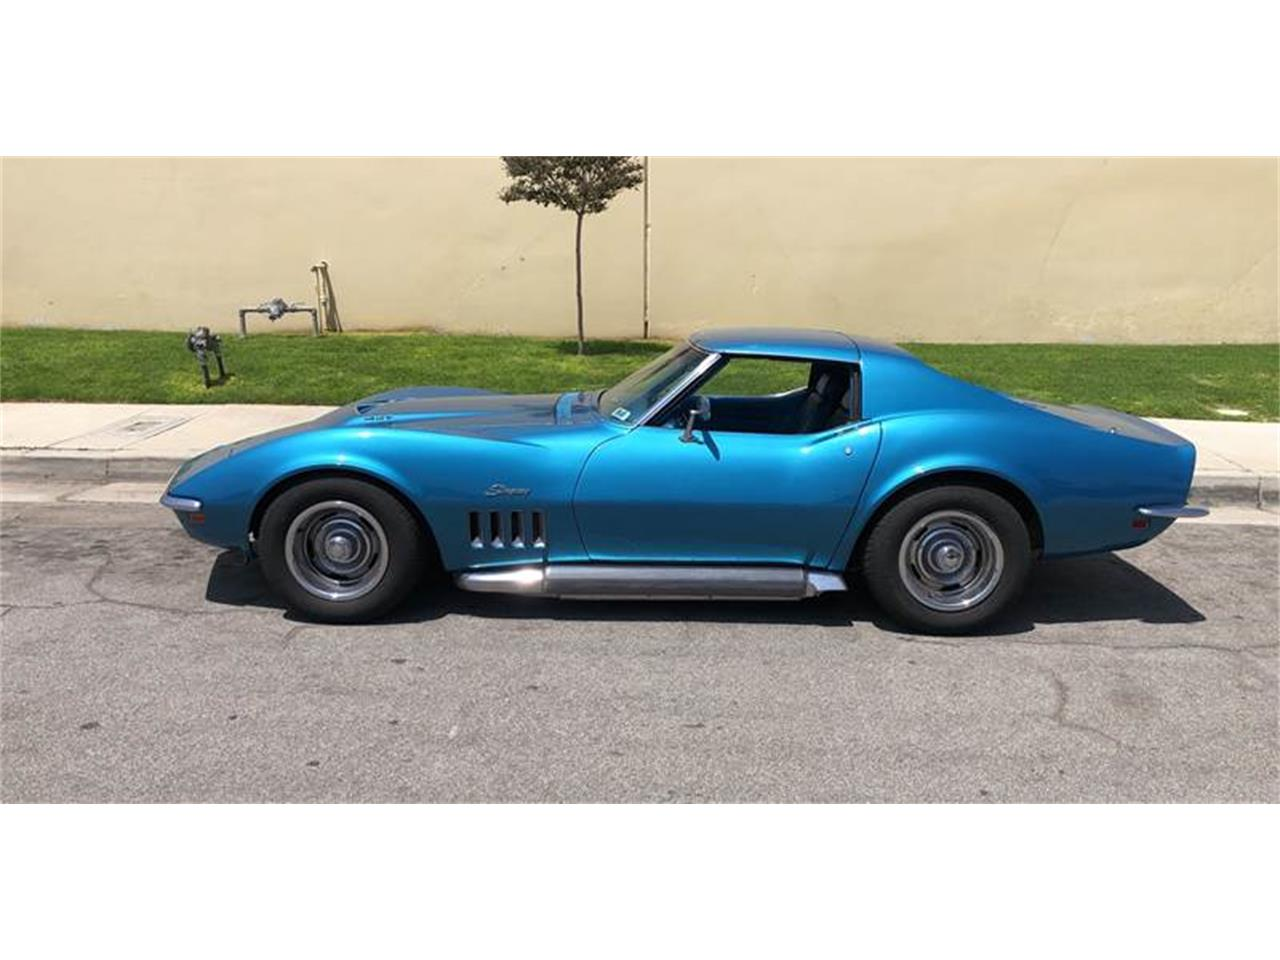 Large Picture of Classic 1969 Corvette located in Brea California Auction Vehicle Offered by Highline Motorsports - QEIM